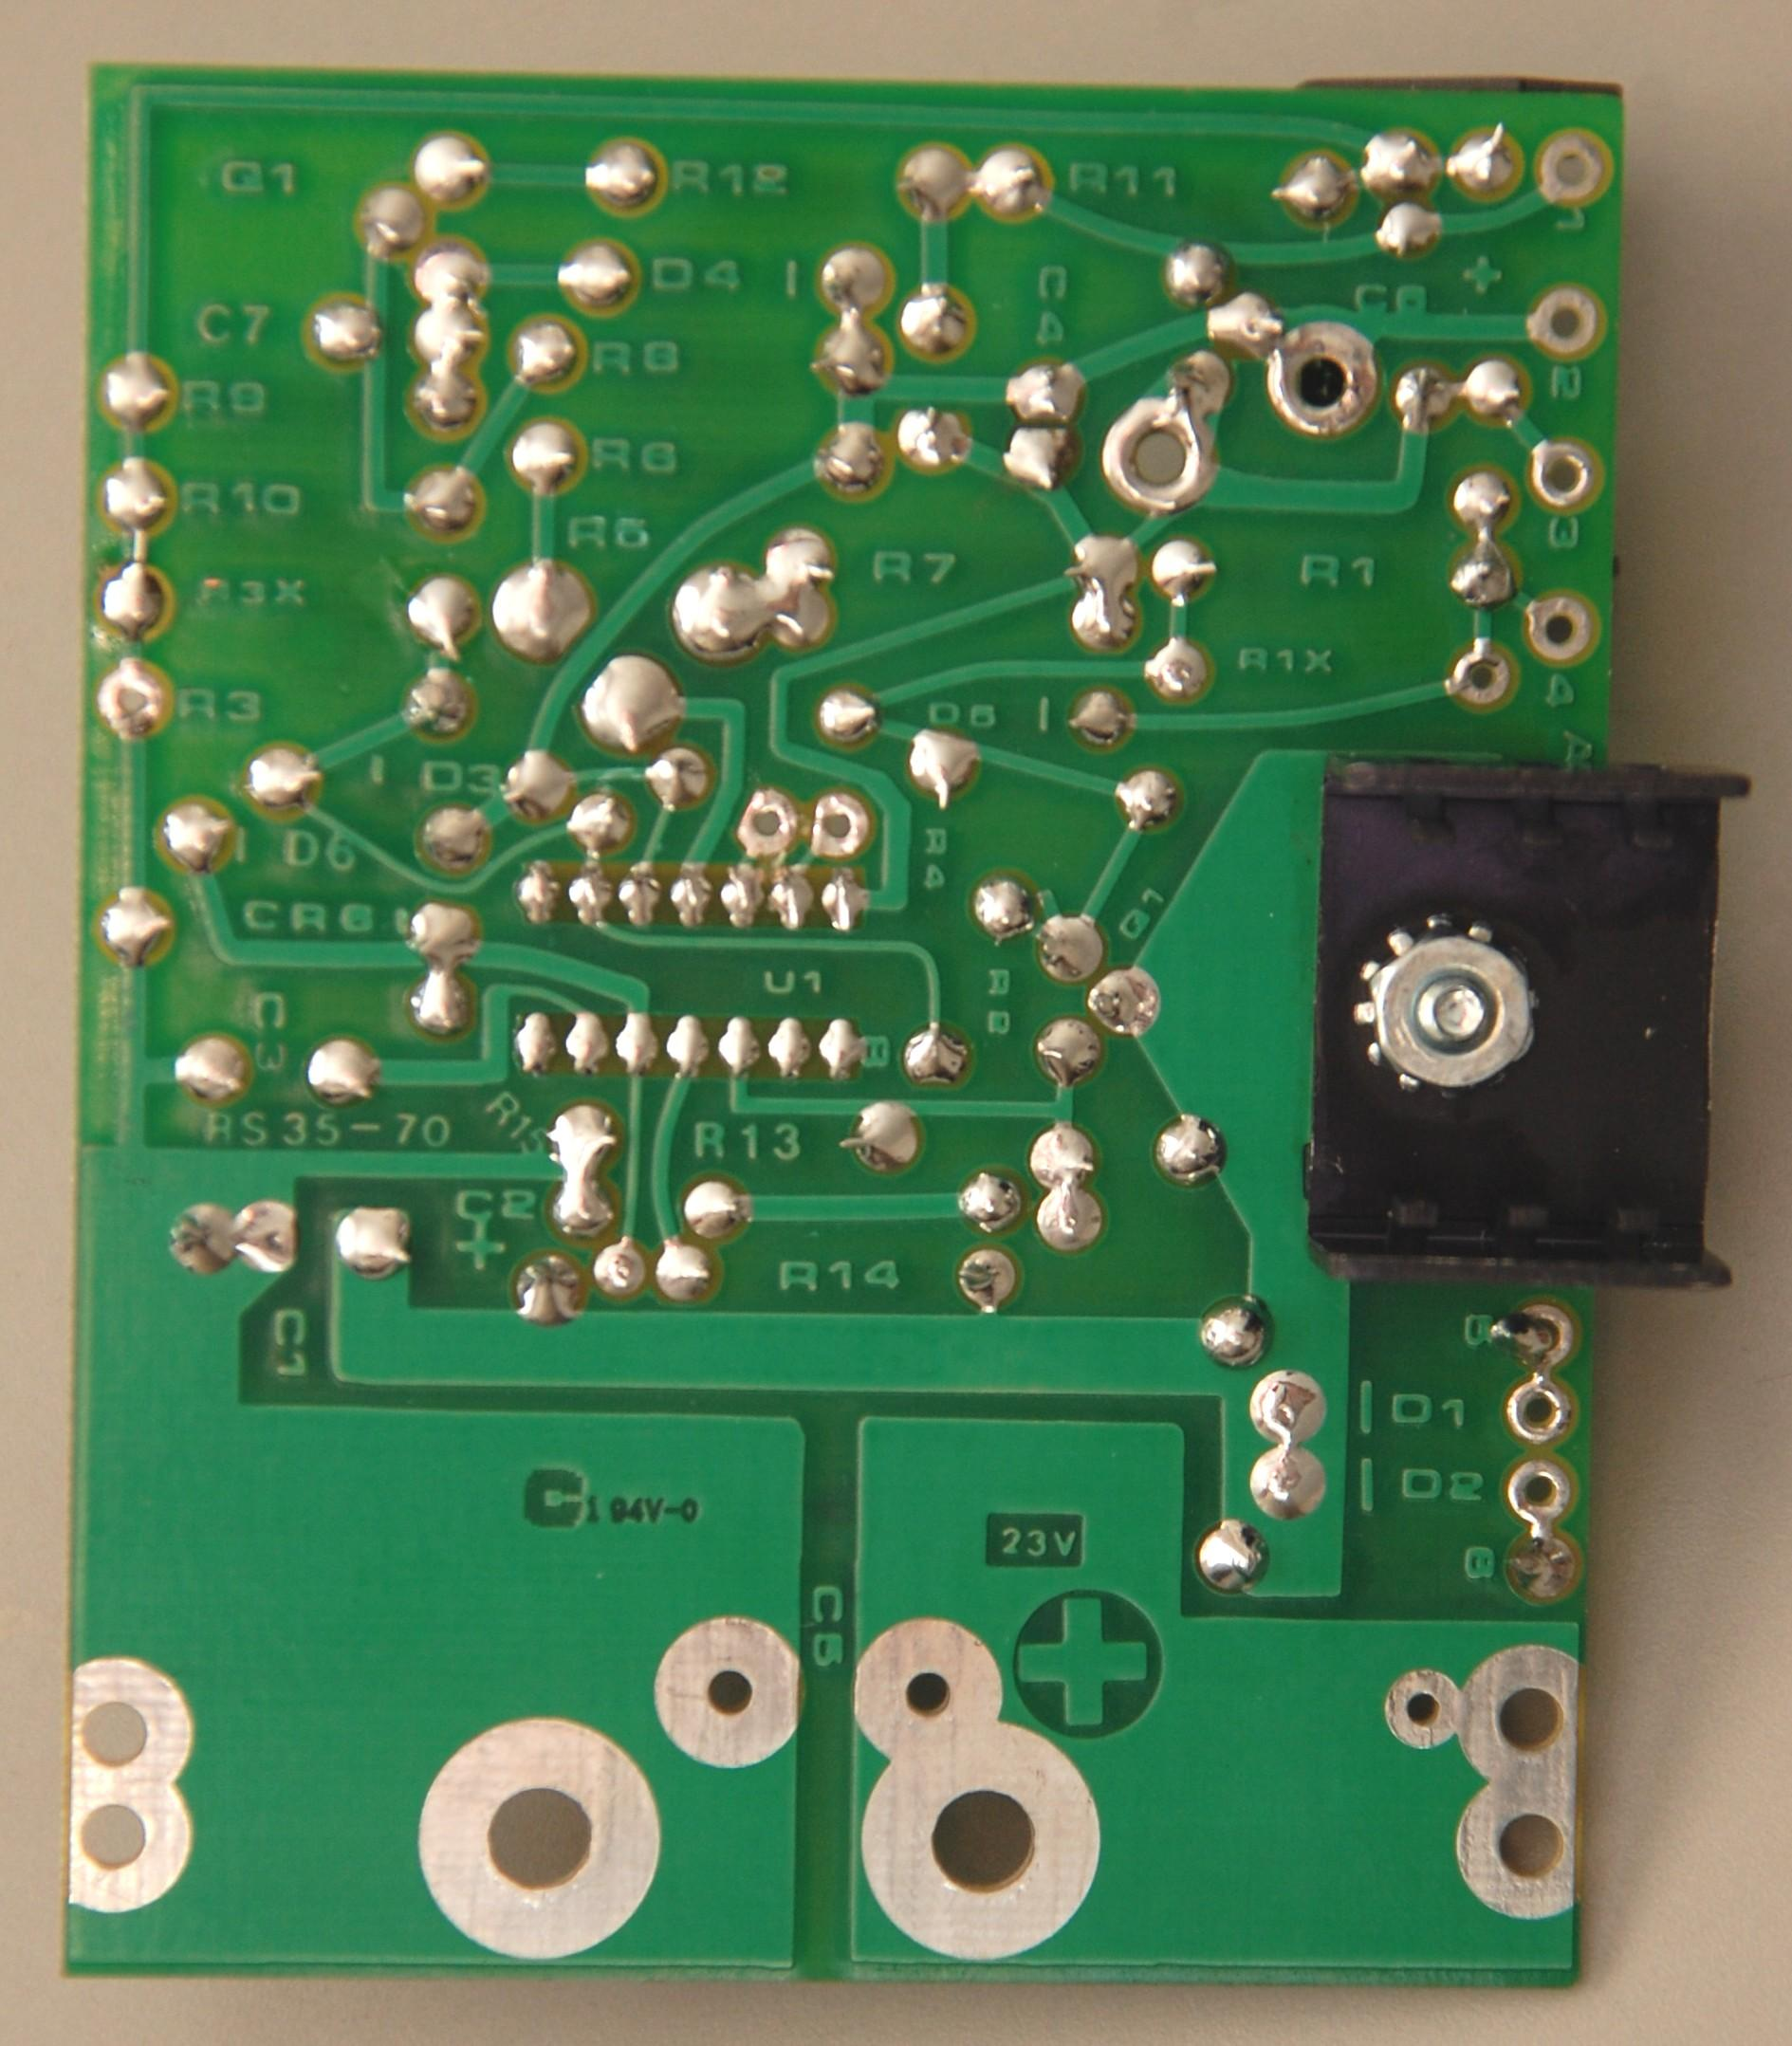 Astron Power Supply Index Page 15 To 37 Volt 30 Amp Brand New Regulator Board Ordered In 2014 For A Vs35 Courtesy Of Bob Mckinlay Ve3dj The Blue Adjustable Potentiometer Marked 1k On